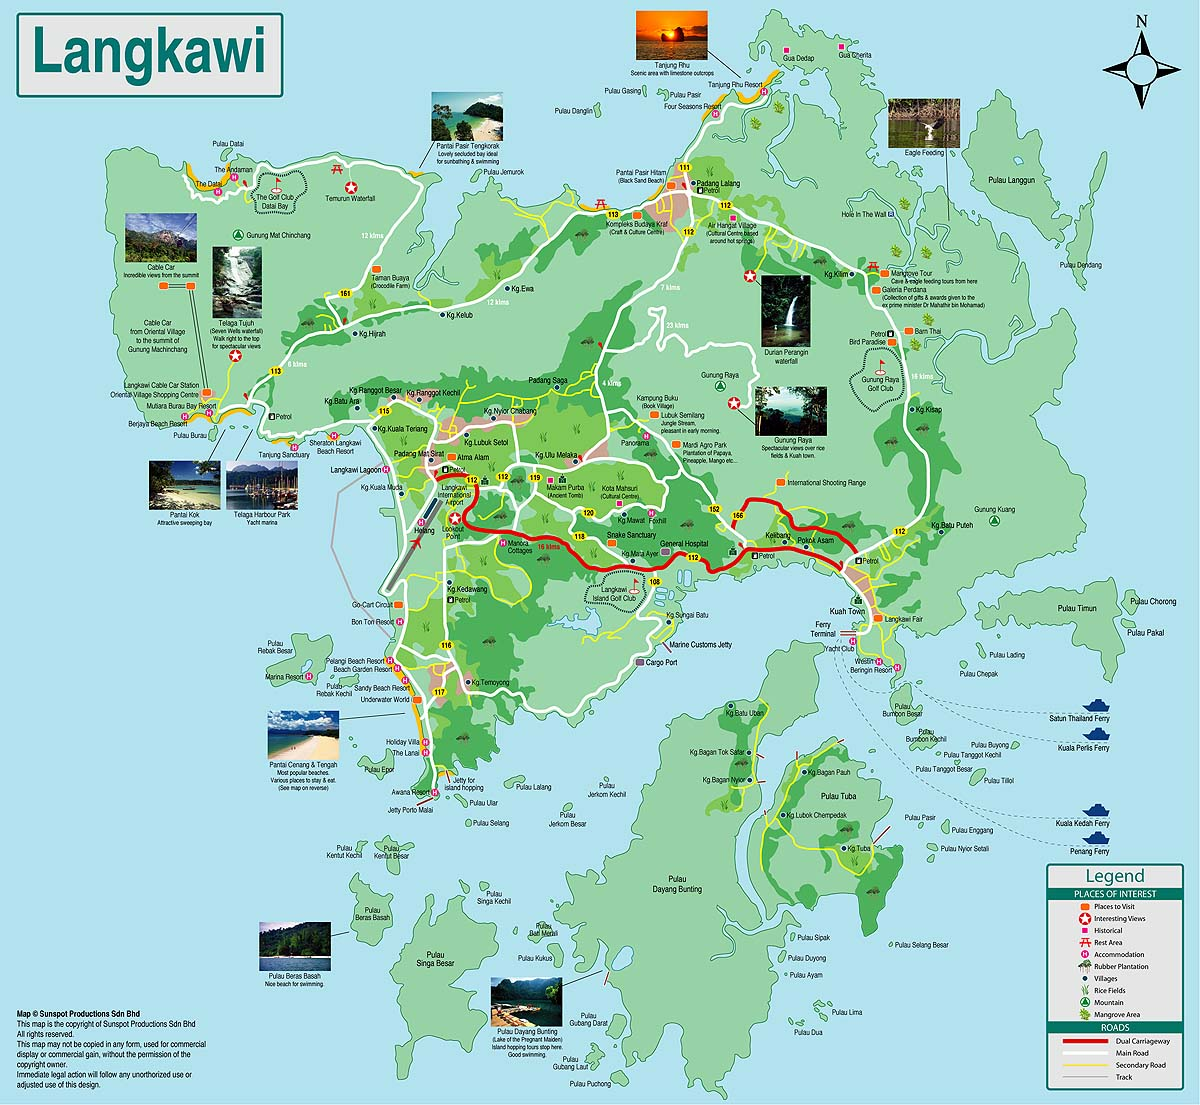 Langkawi Malaysia: .going Everywhere For Catching Up The Journey.: Langkawi's Map